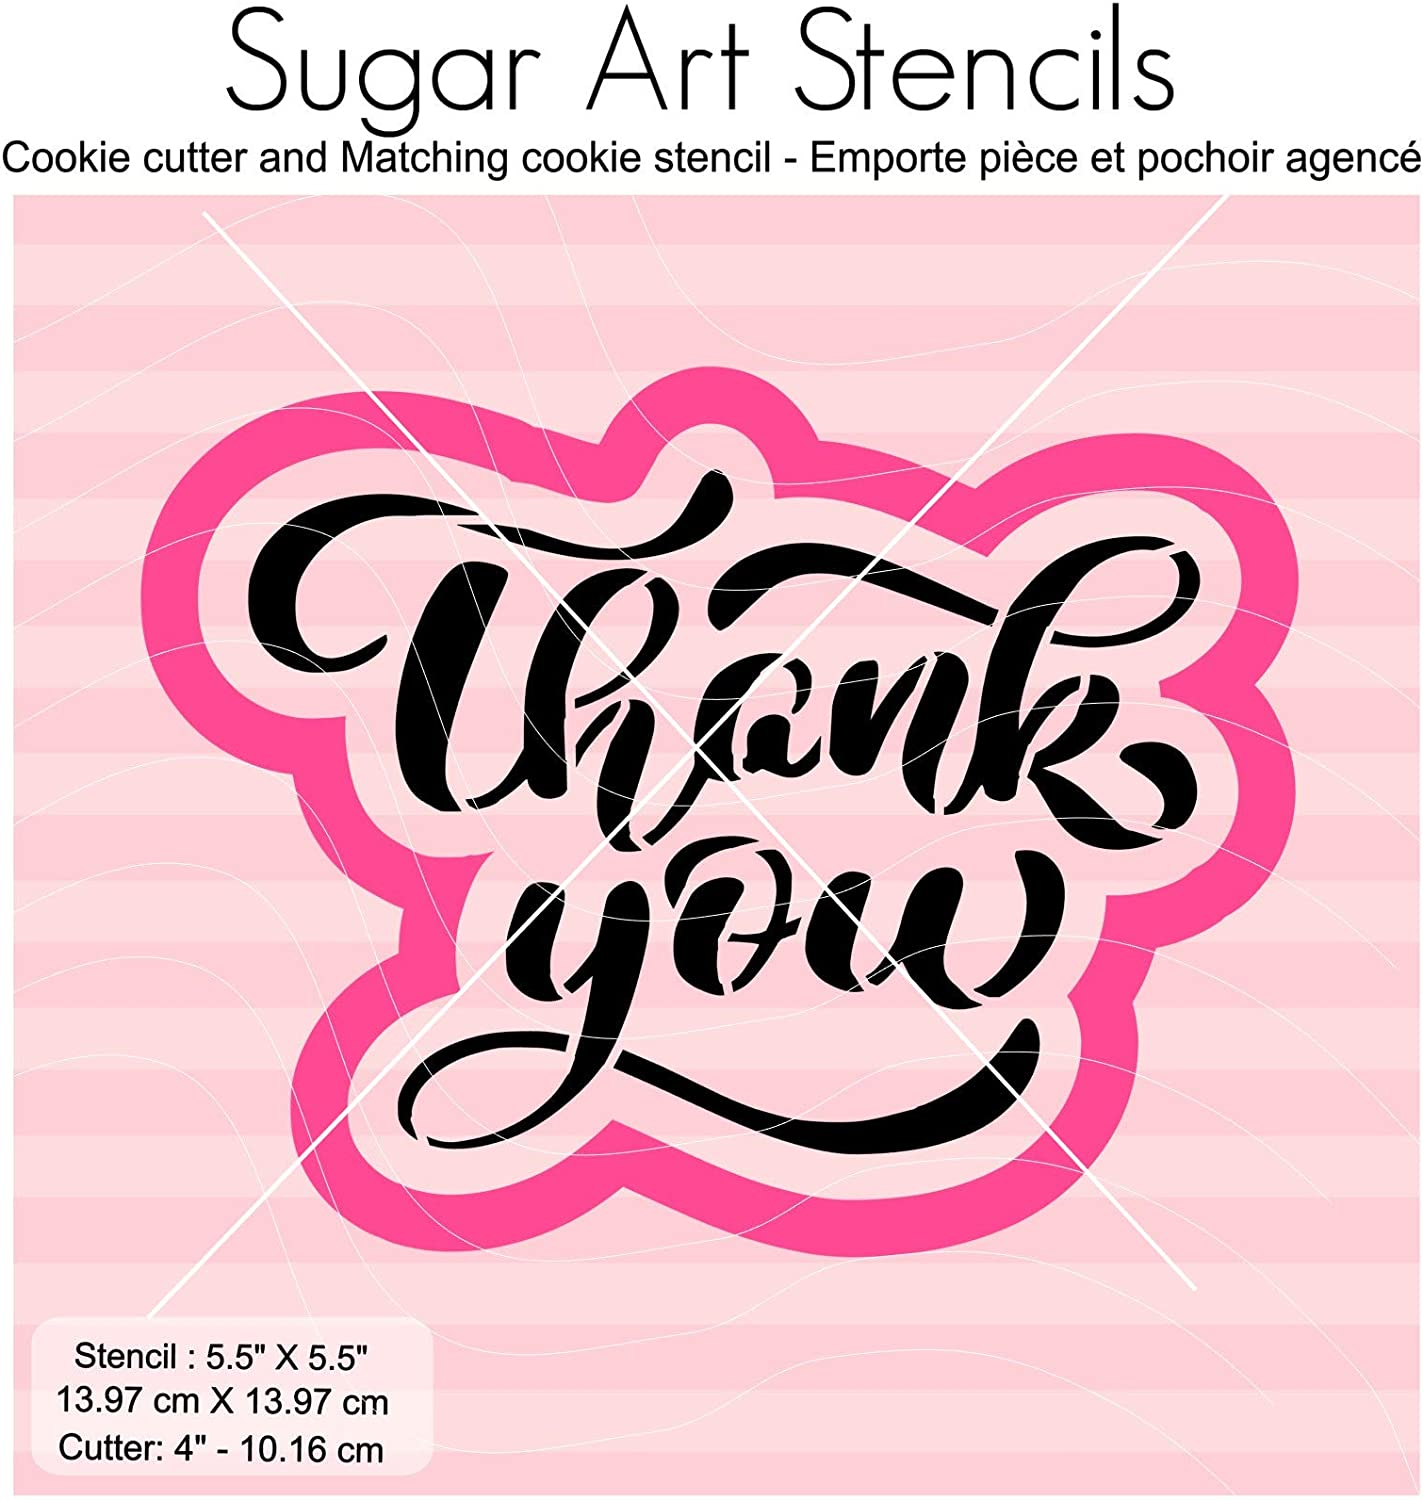 Cookie Stencil Hocus Pocus Hand Lettered Cutter and Stencil FAST SHIPPING!! Fondant Cutter. Cookie Cutter